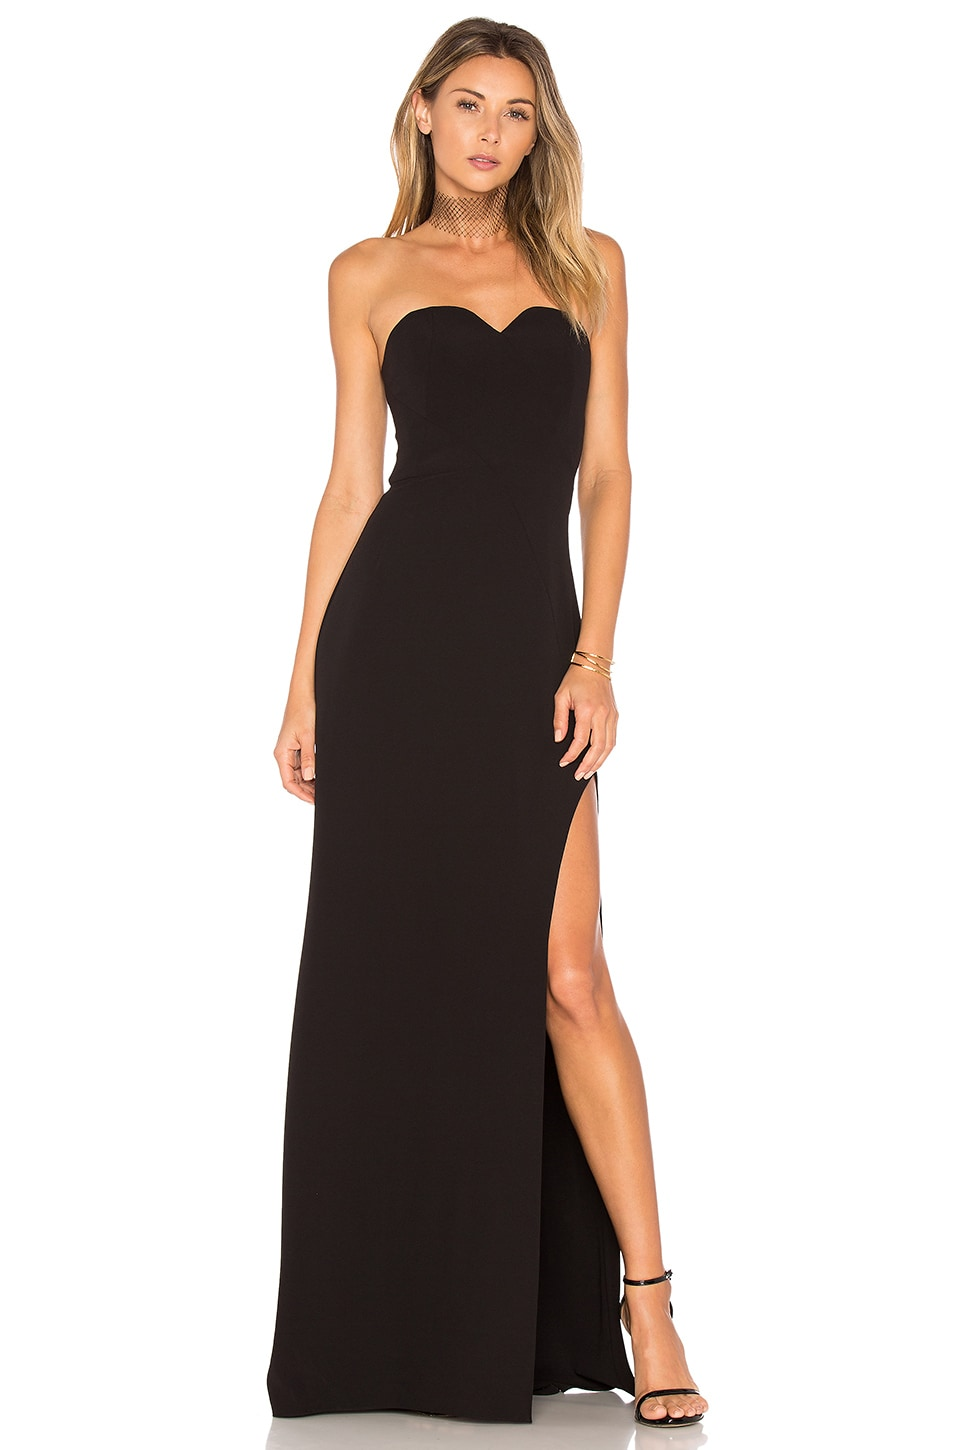 Halston Heritage High Slit Gown in Black | REVOLVE